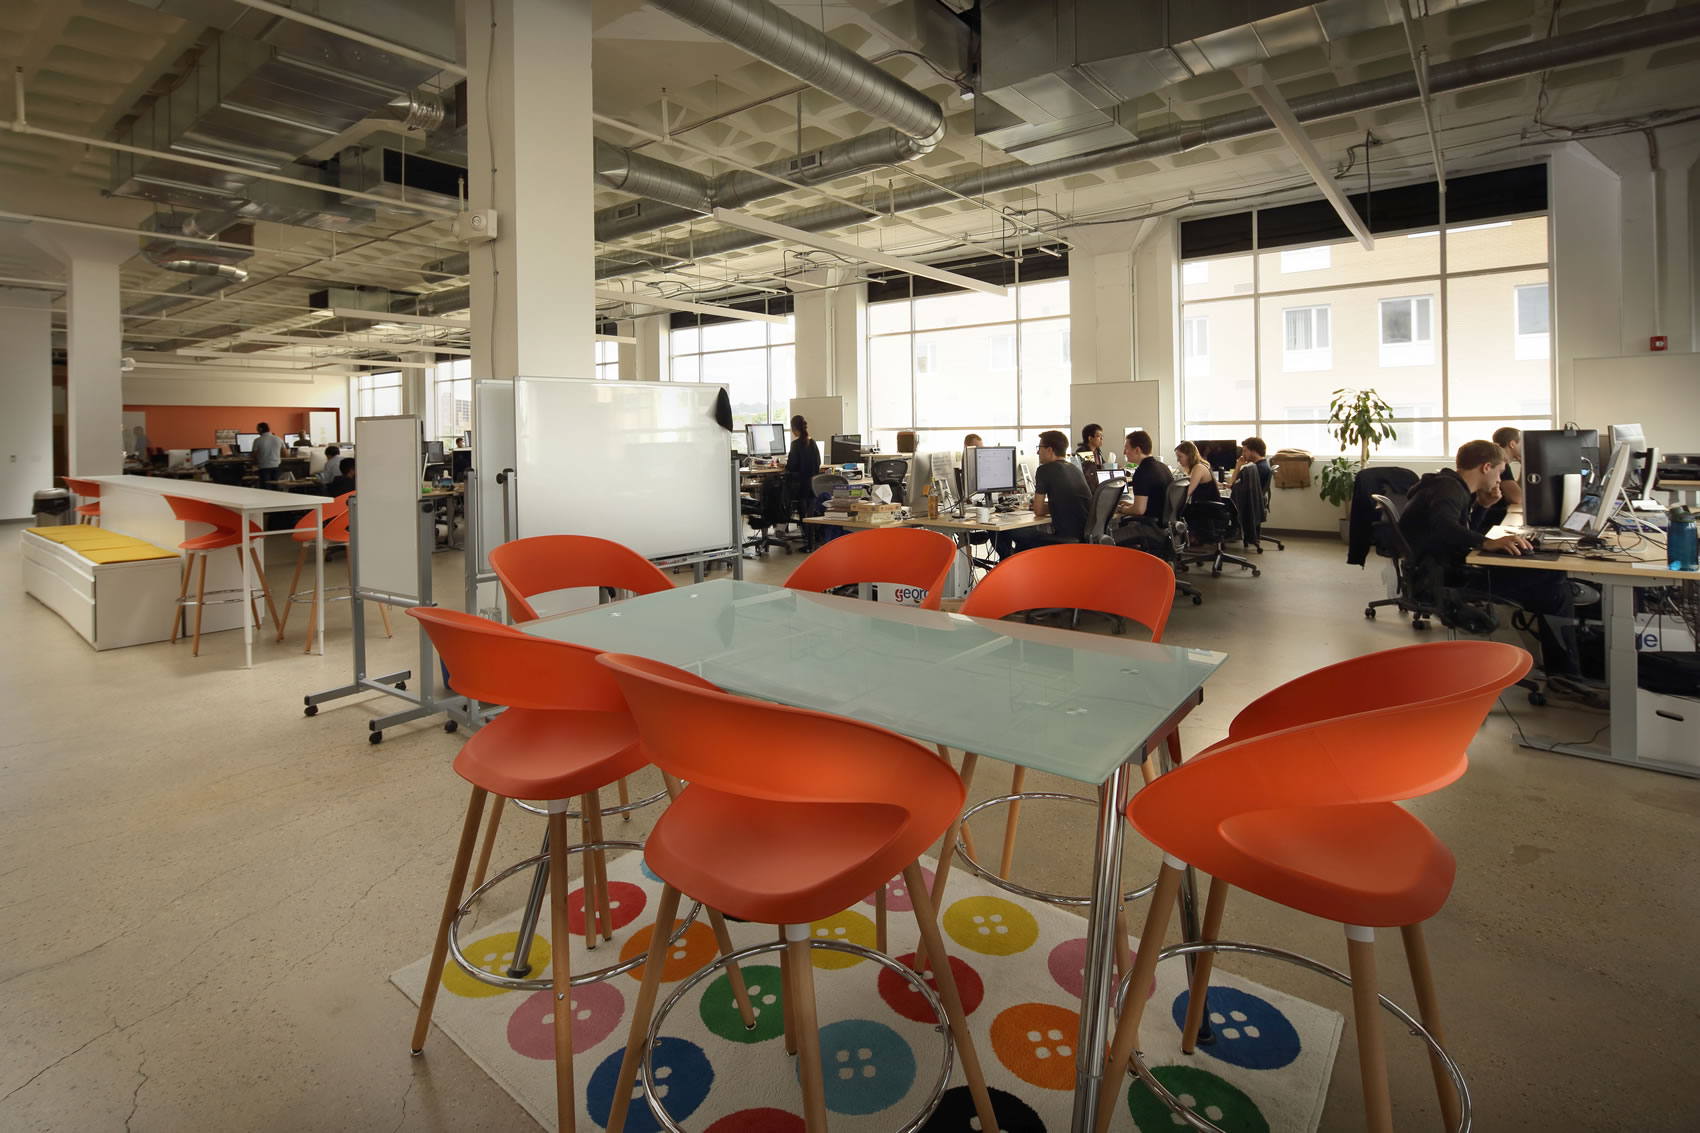 Inside the Duolingo headquarters - Duolingo and the global language mix